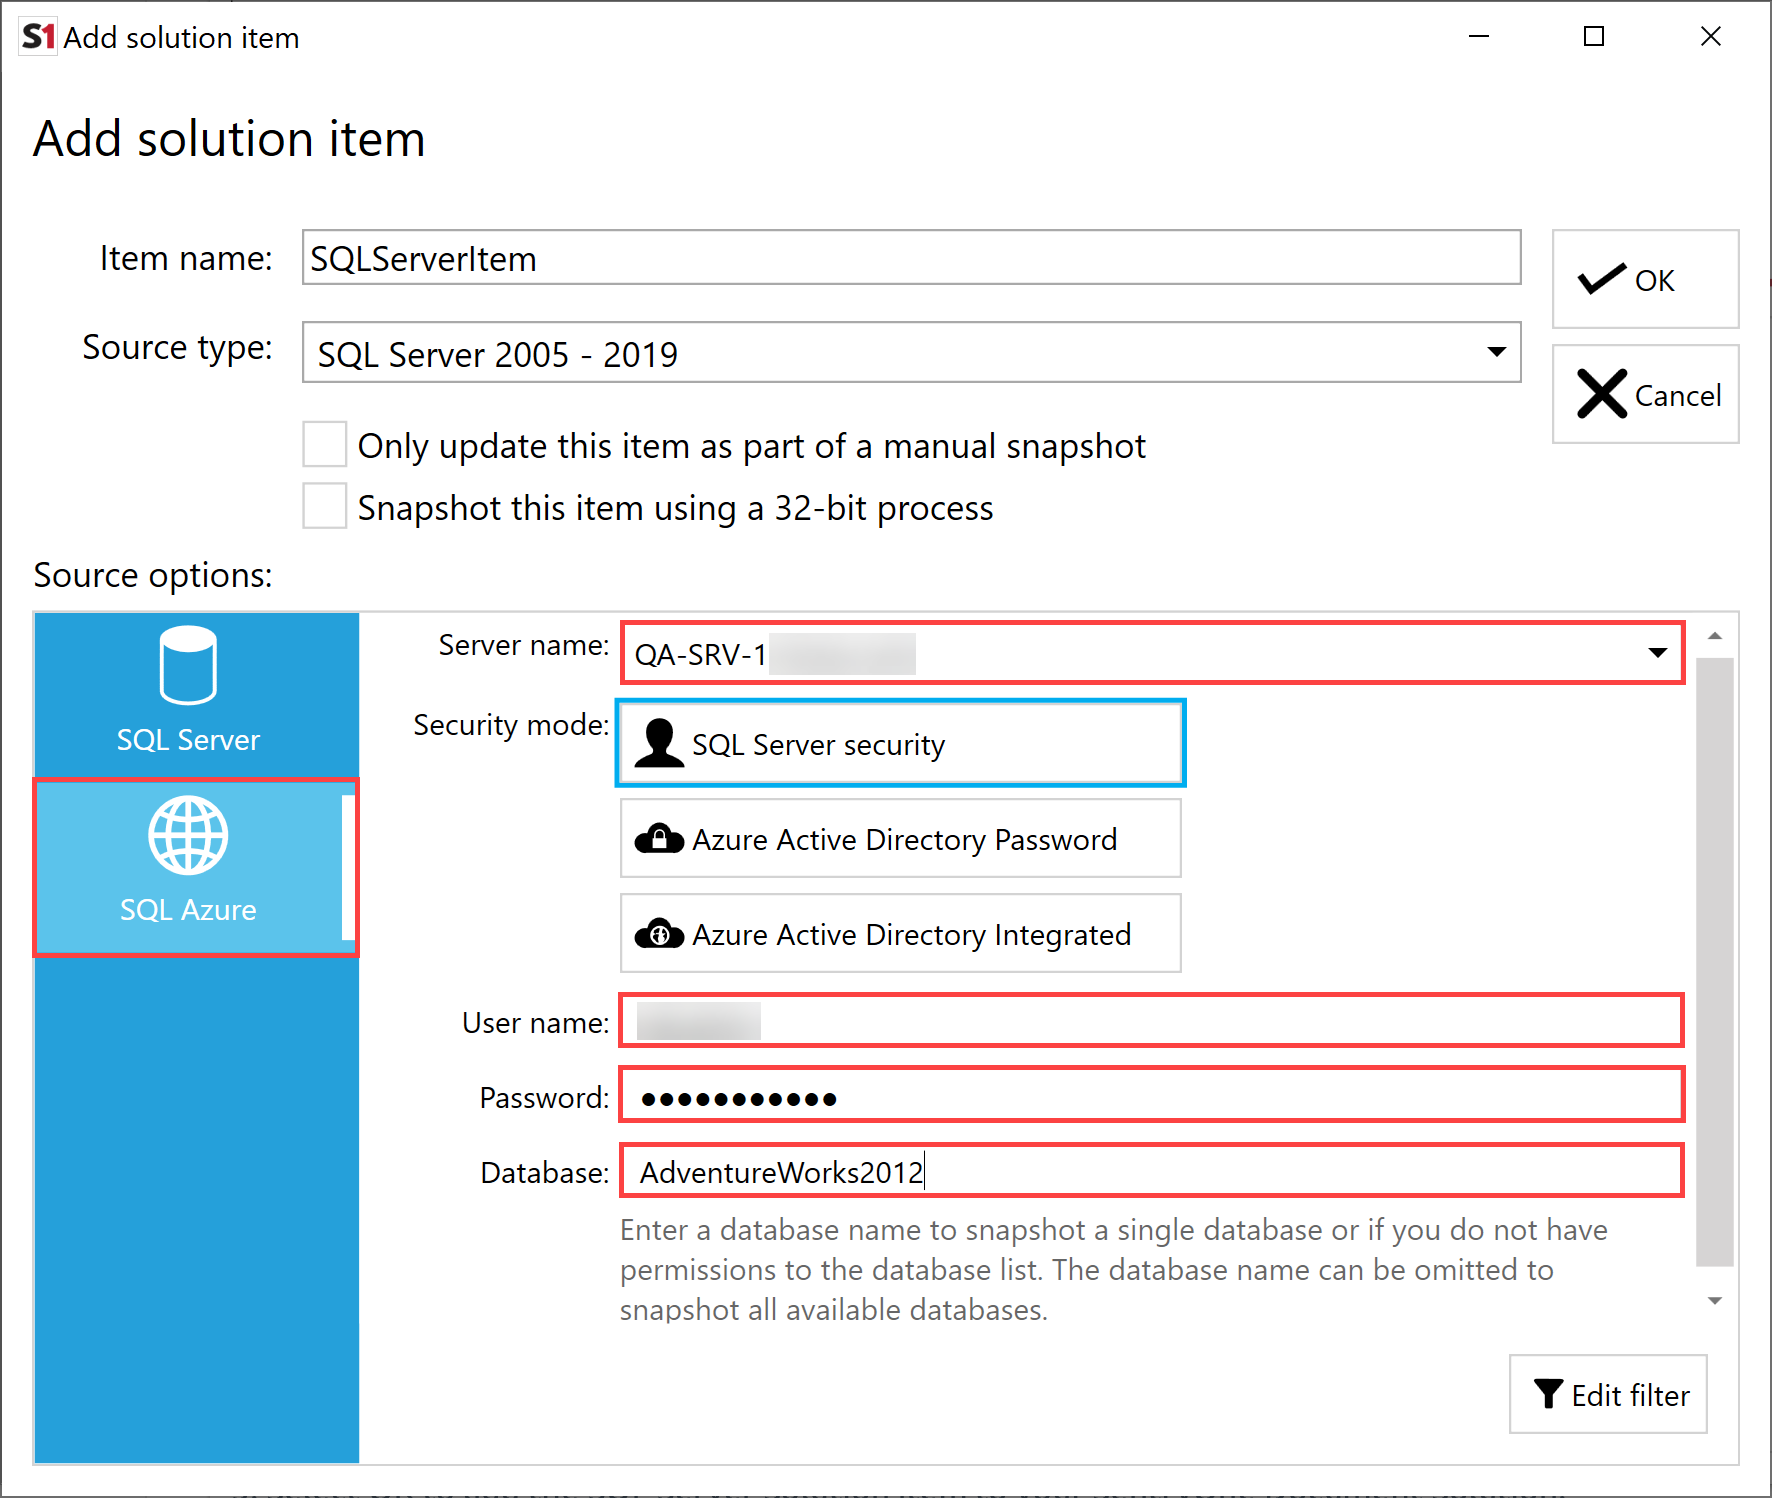 SentryOne Document Add Solution Item SQL Azure credentials